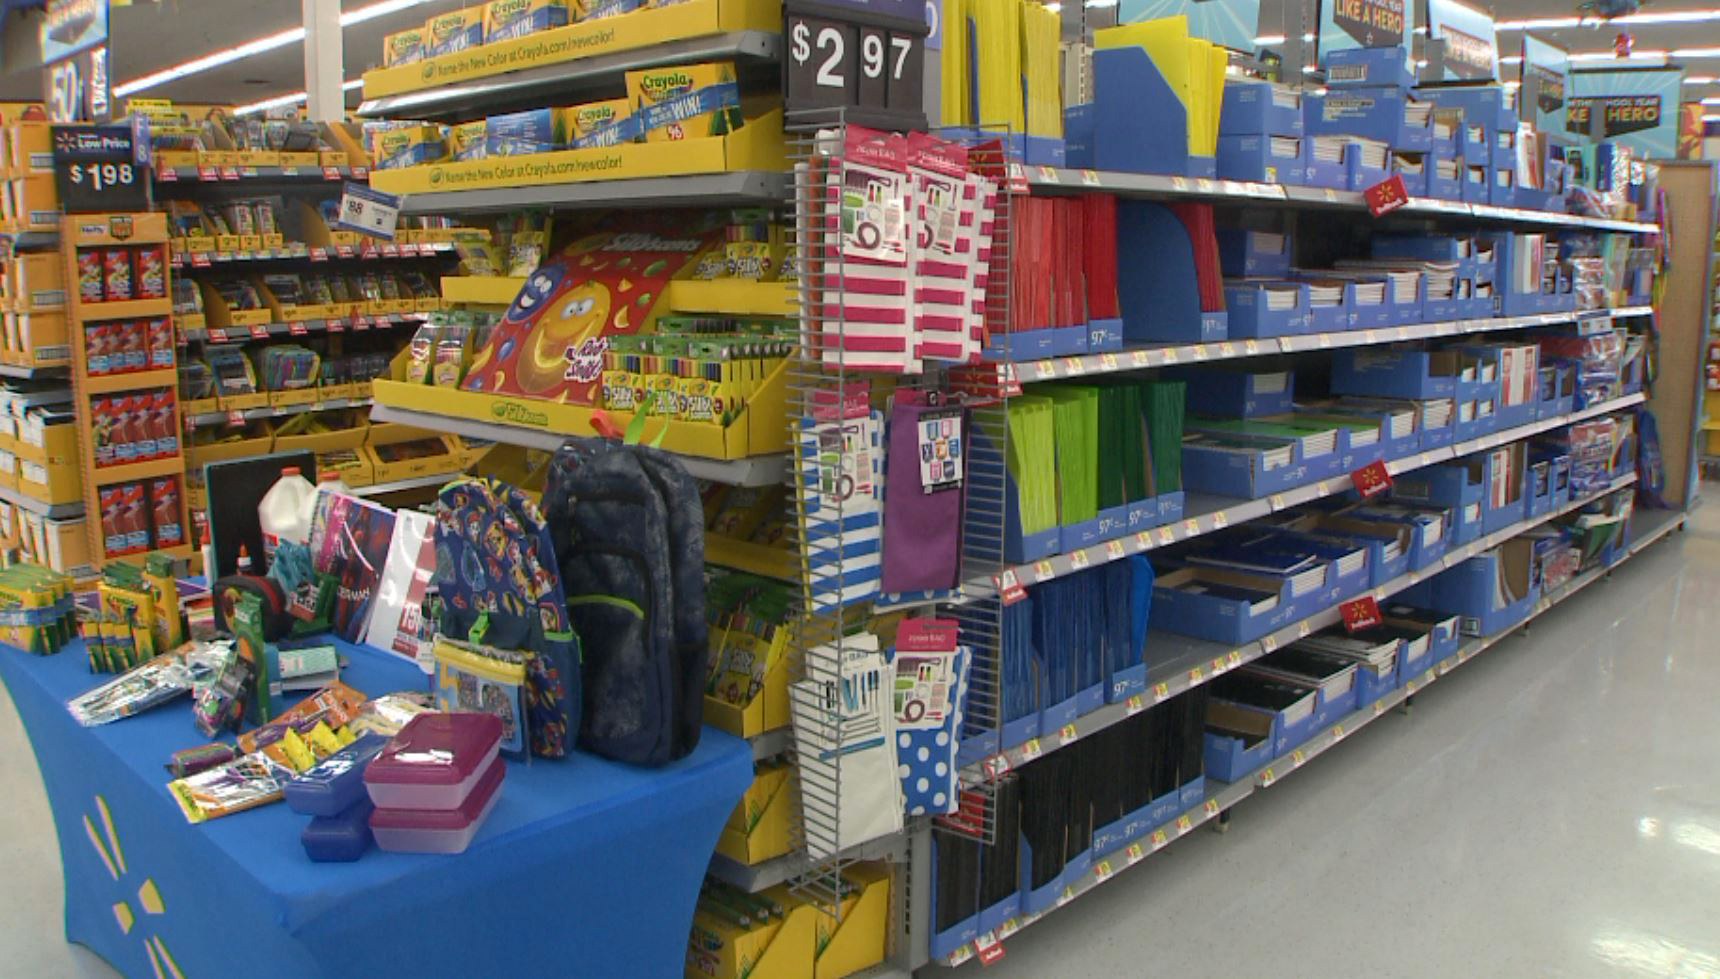 Walmart Back to School - supplies - shopping_523966